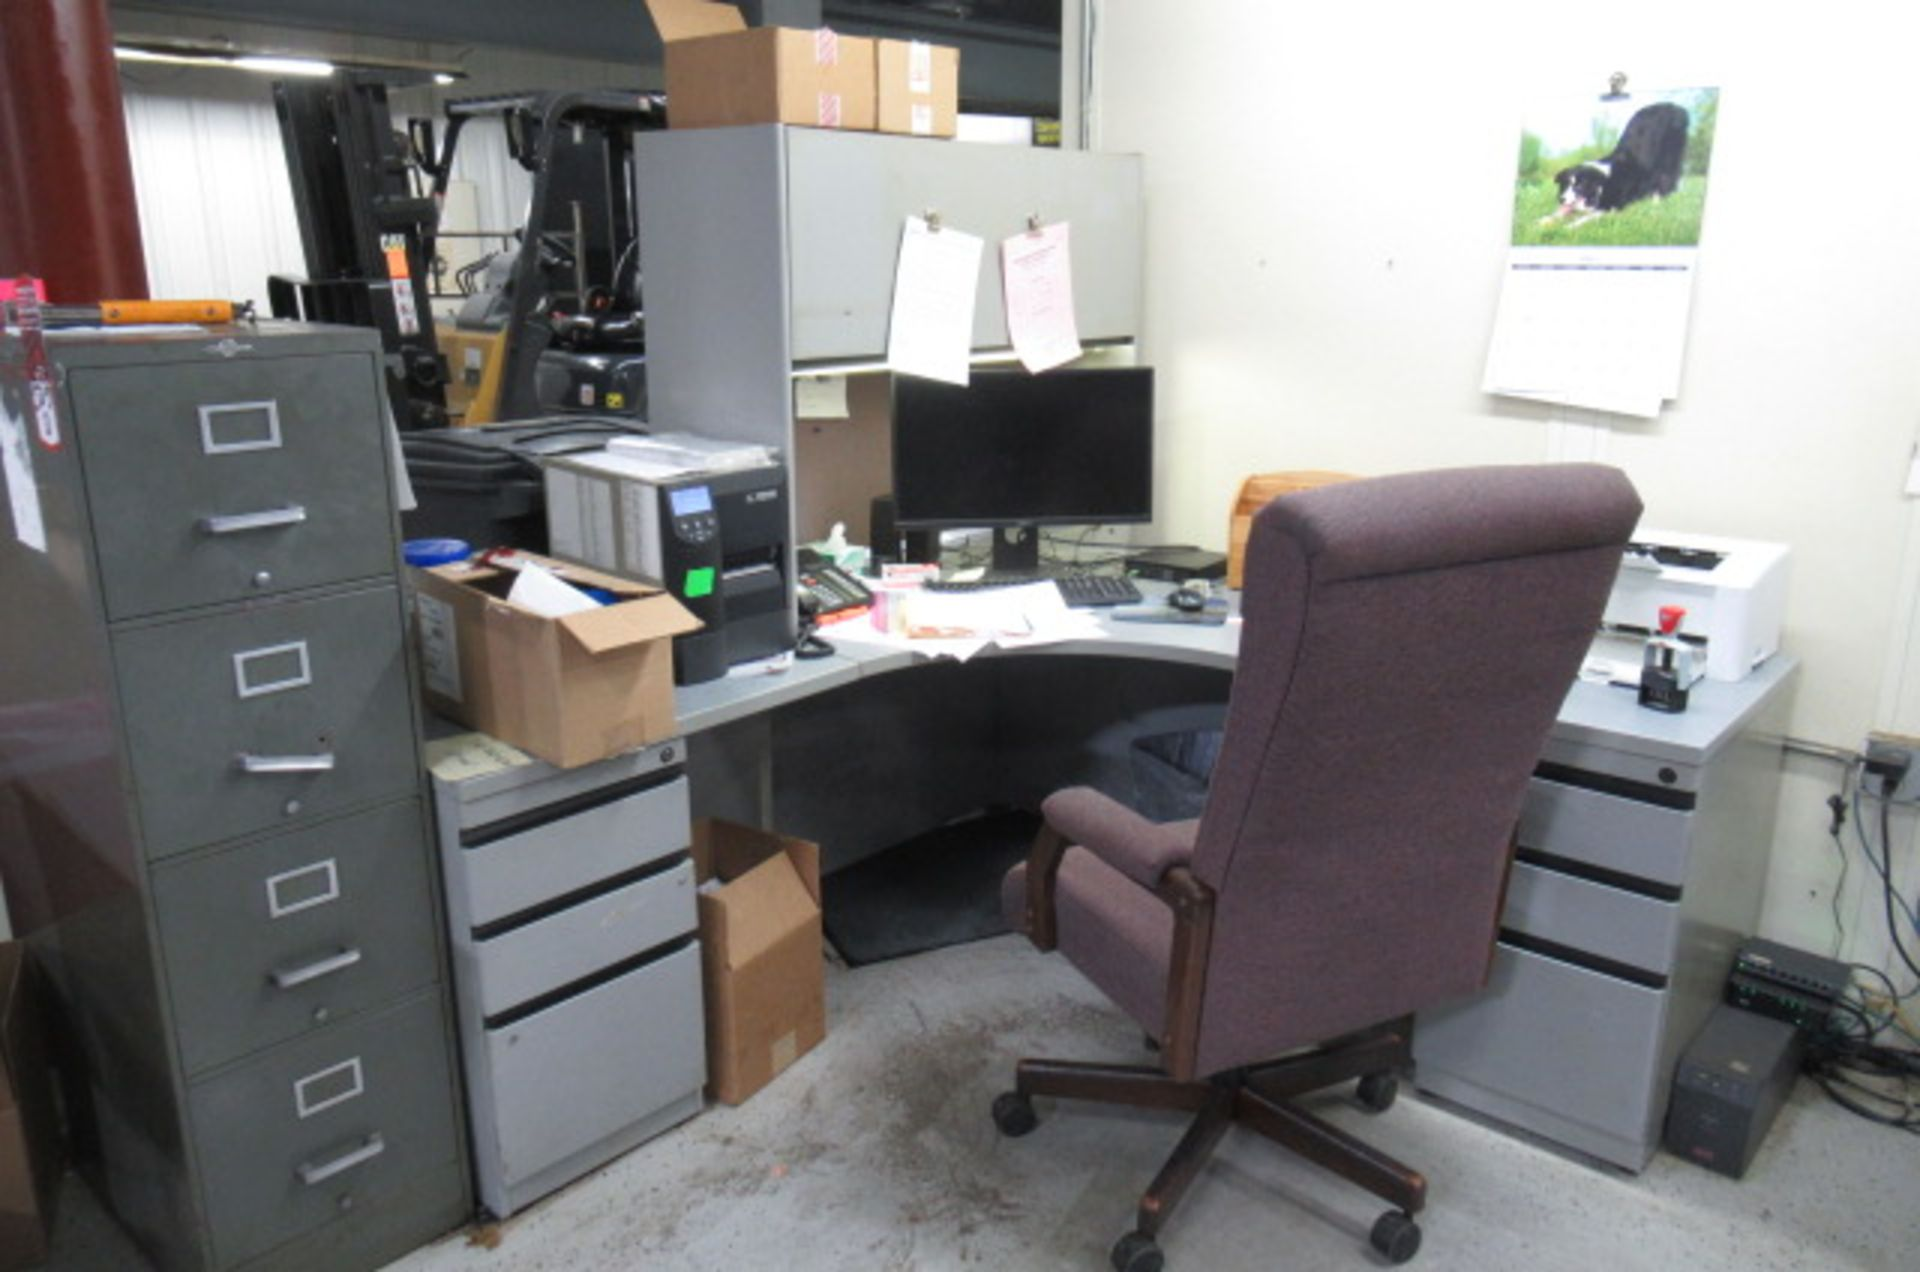 Shipping Area L shape Desk, File cabinet, Caning Copier, 2-sm tales, 3 Drawer Cabinet - Image 2 of 5